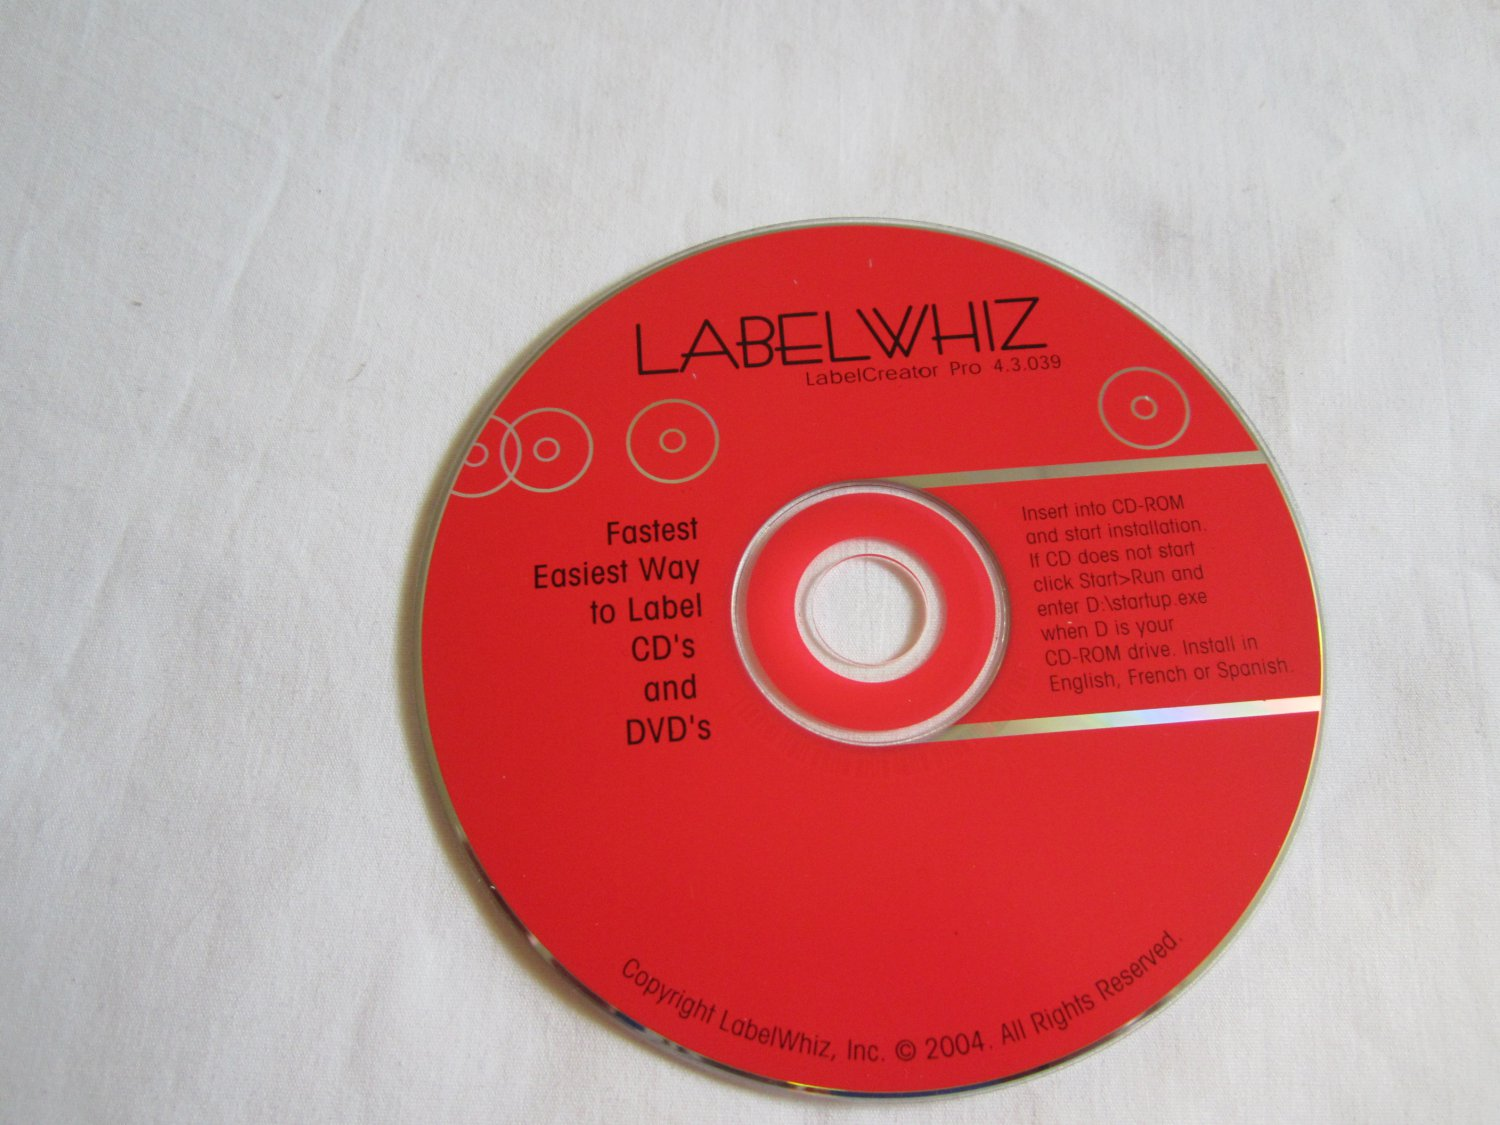 LabelWhiz LabelCreator Pro 4.3.039 CD ROM Labels